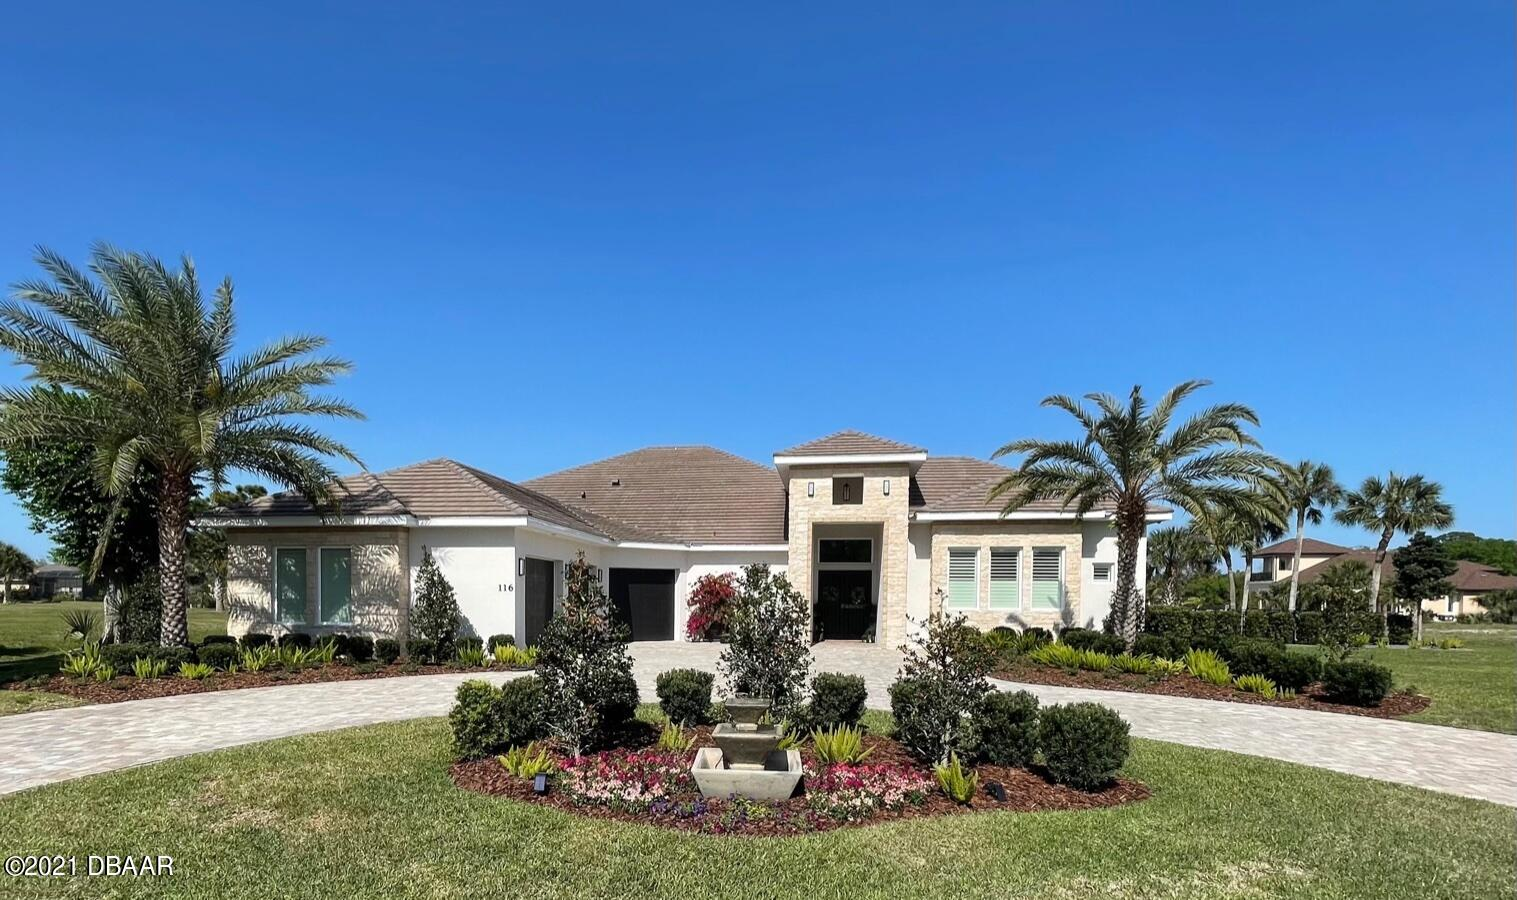 Photo of 116 La Toscana Rotonda, Ormond Beach, FL 32174